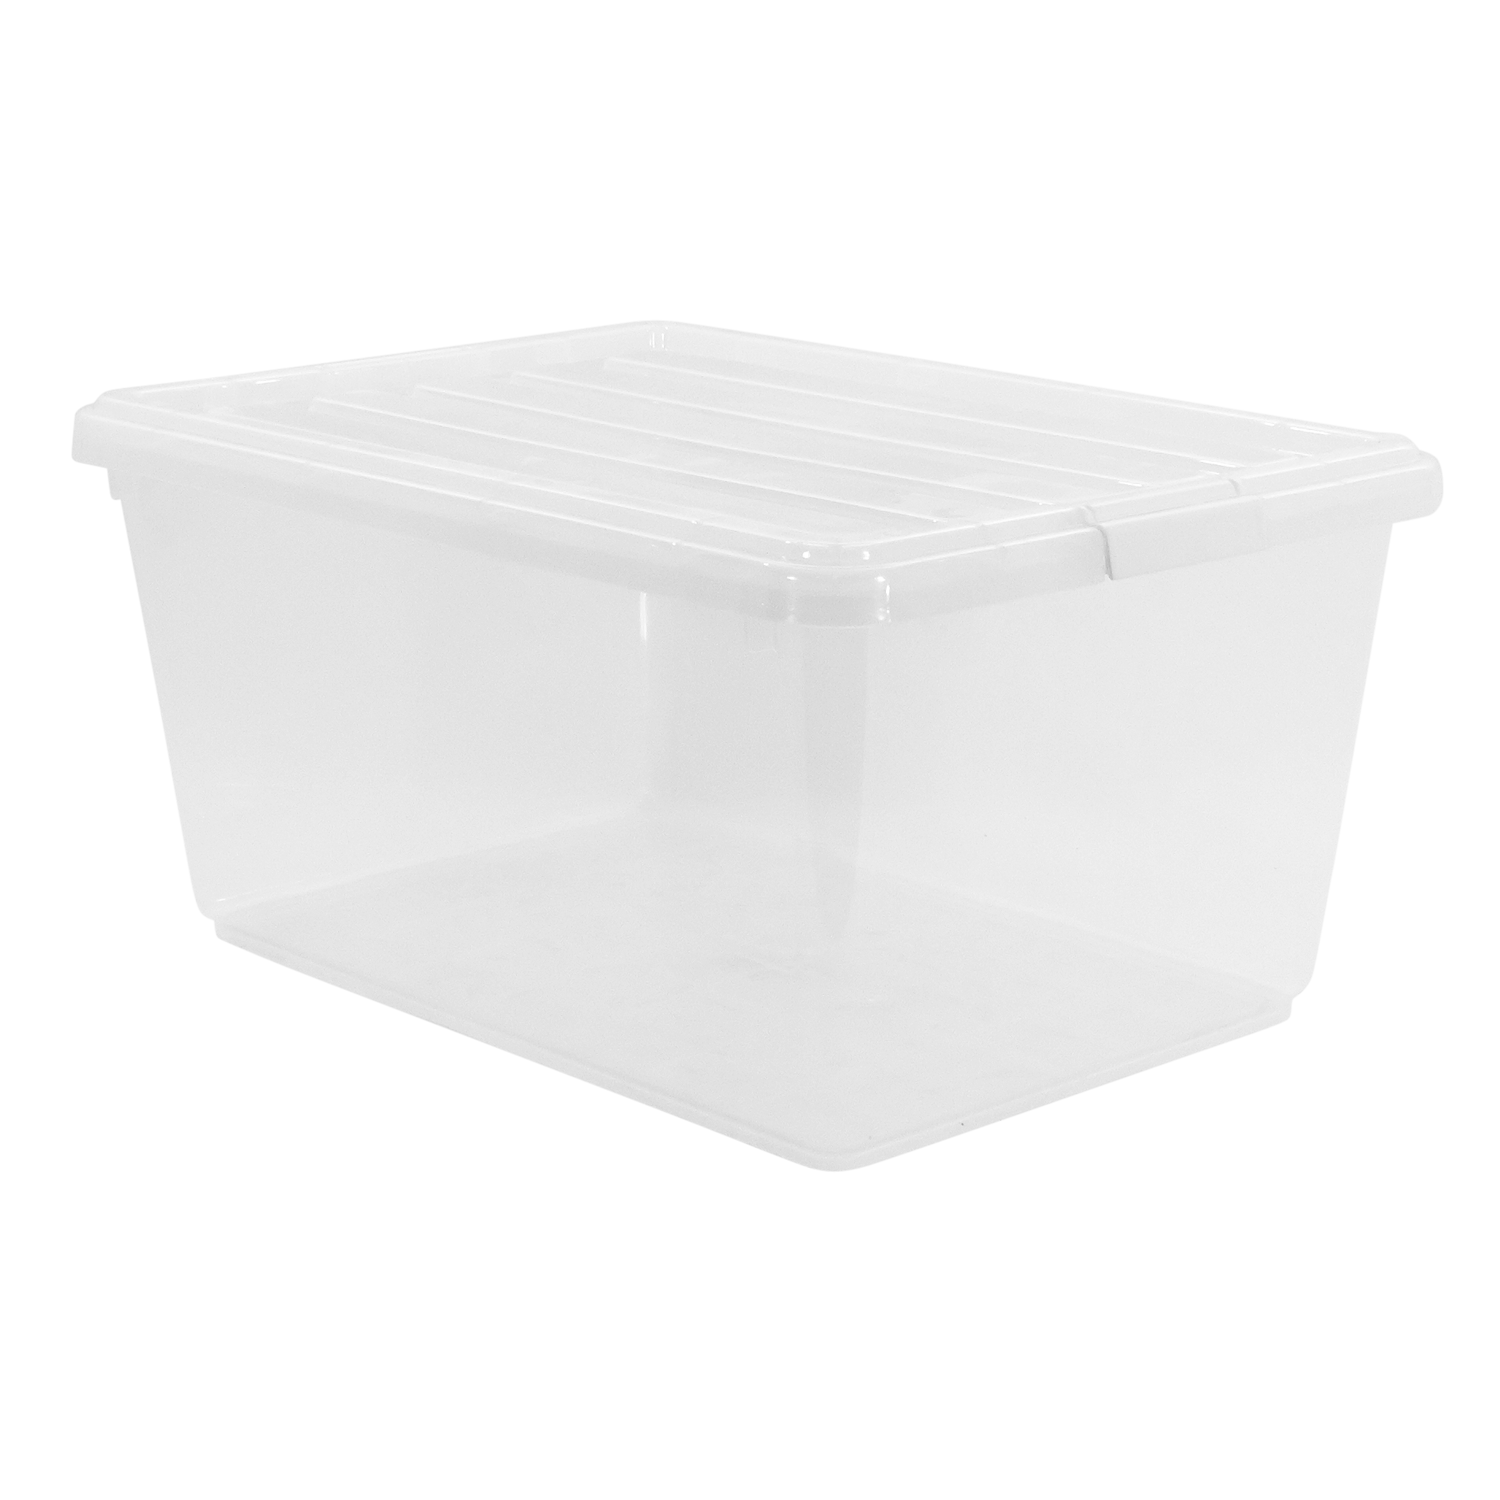 Long clip plastic. Large storage boxes containers